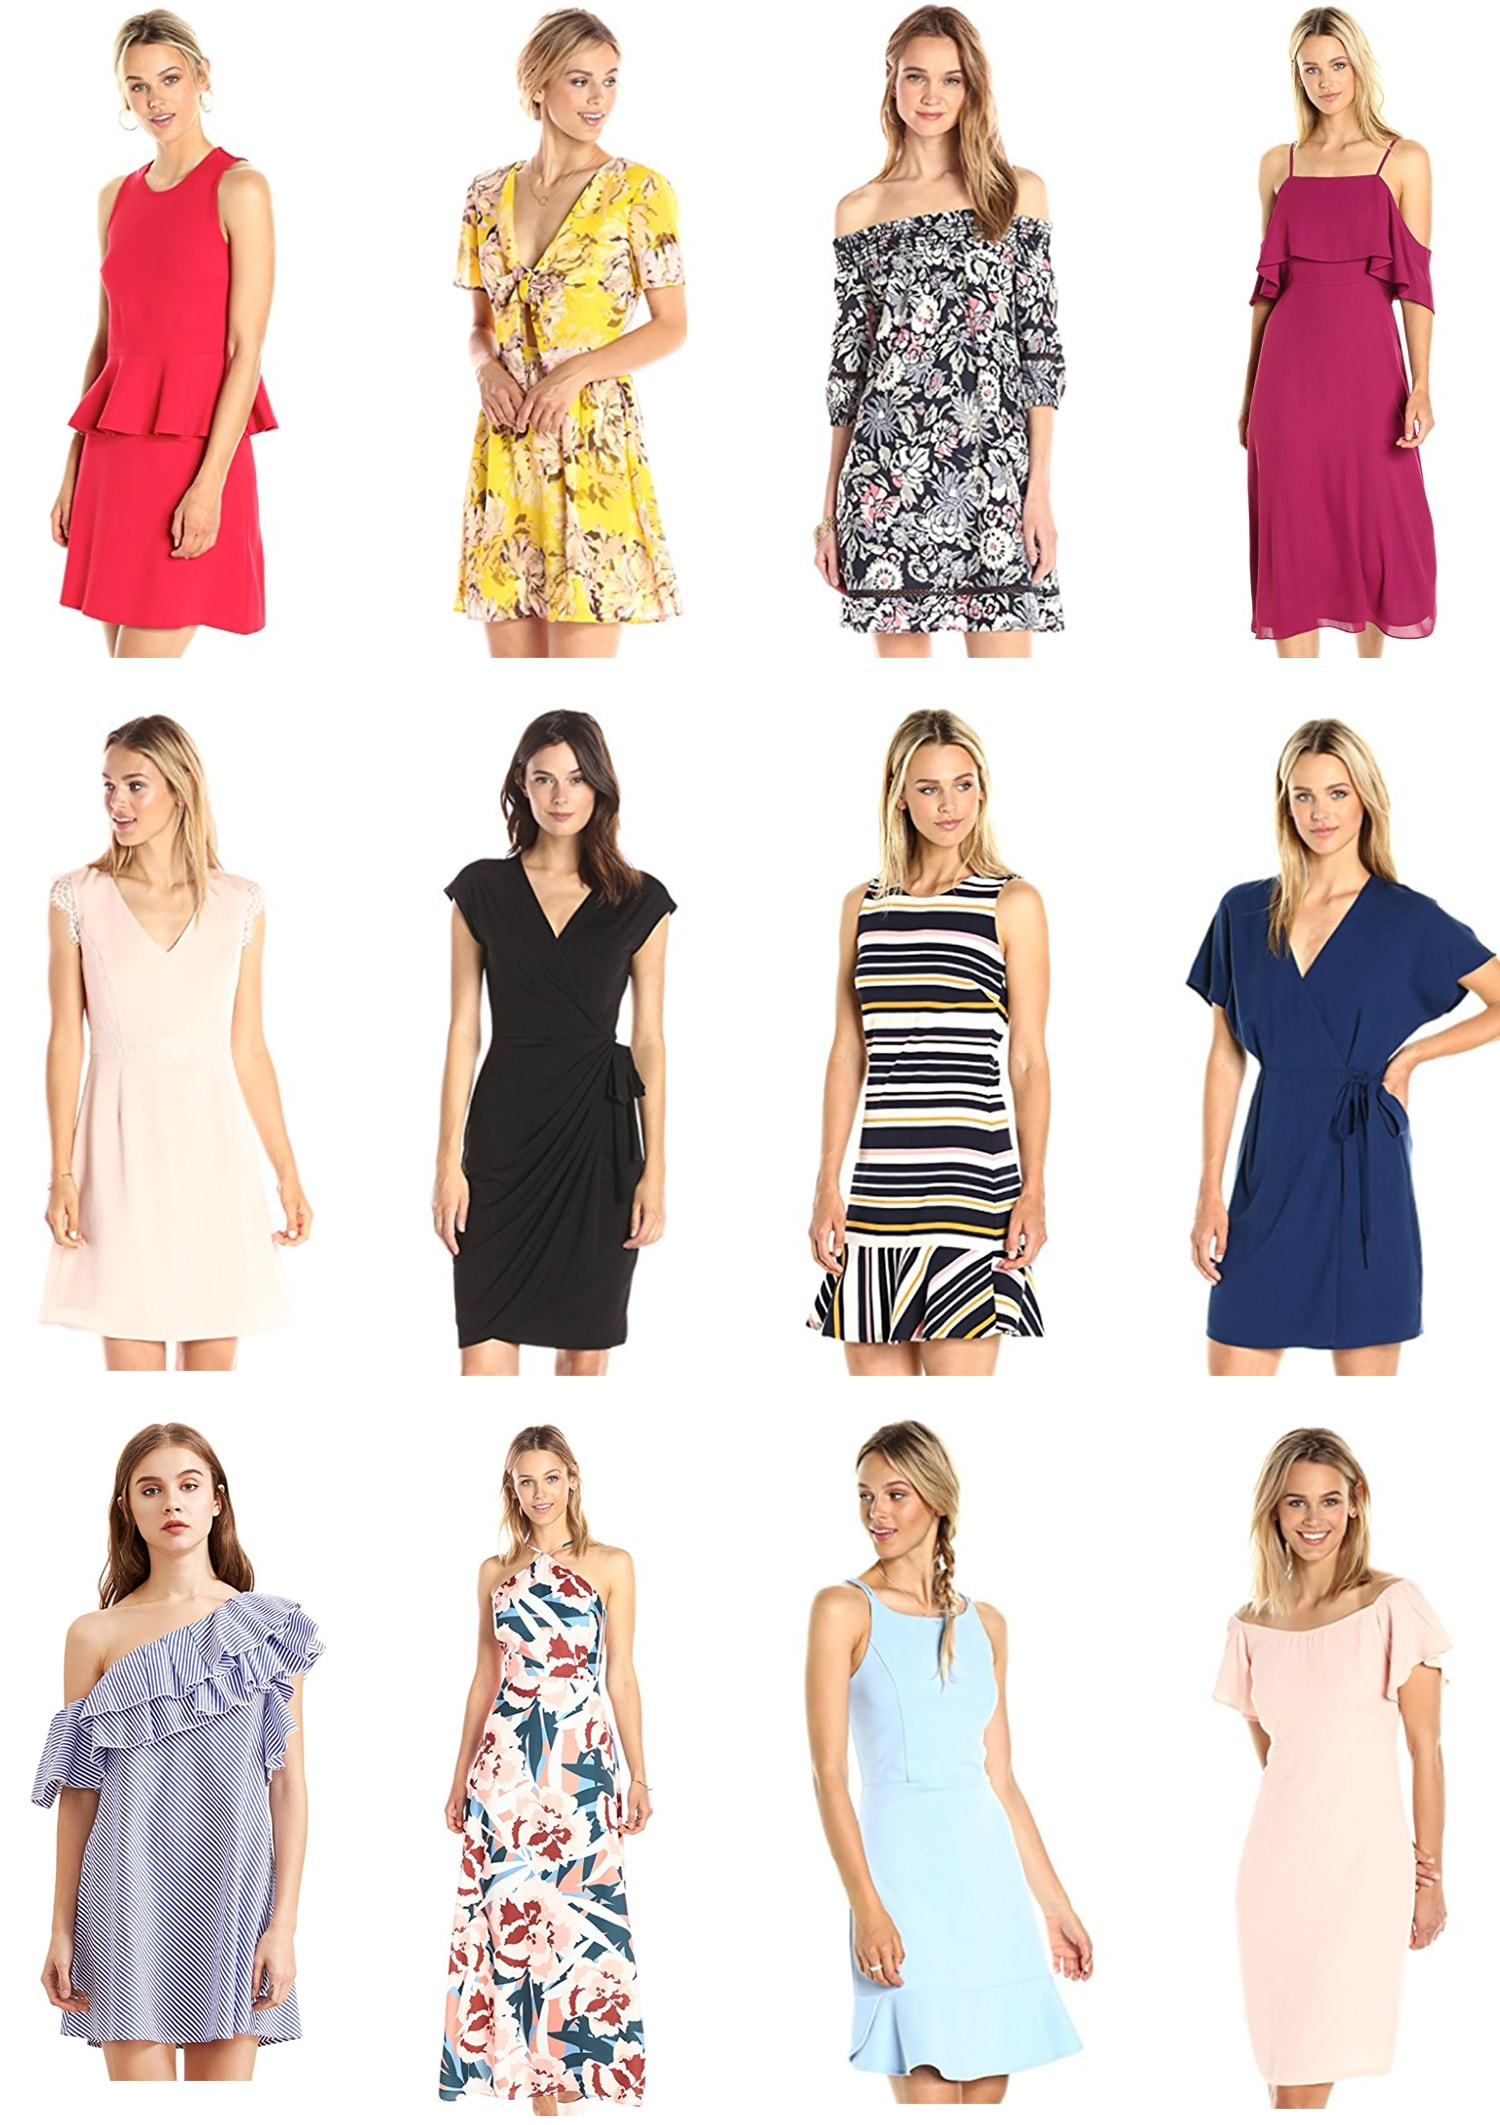 Cute dresses under $50 that ship free with Amazon Prime by Orlando fashion blogger Ashley Brooke Nicholas